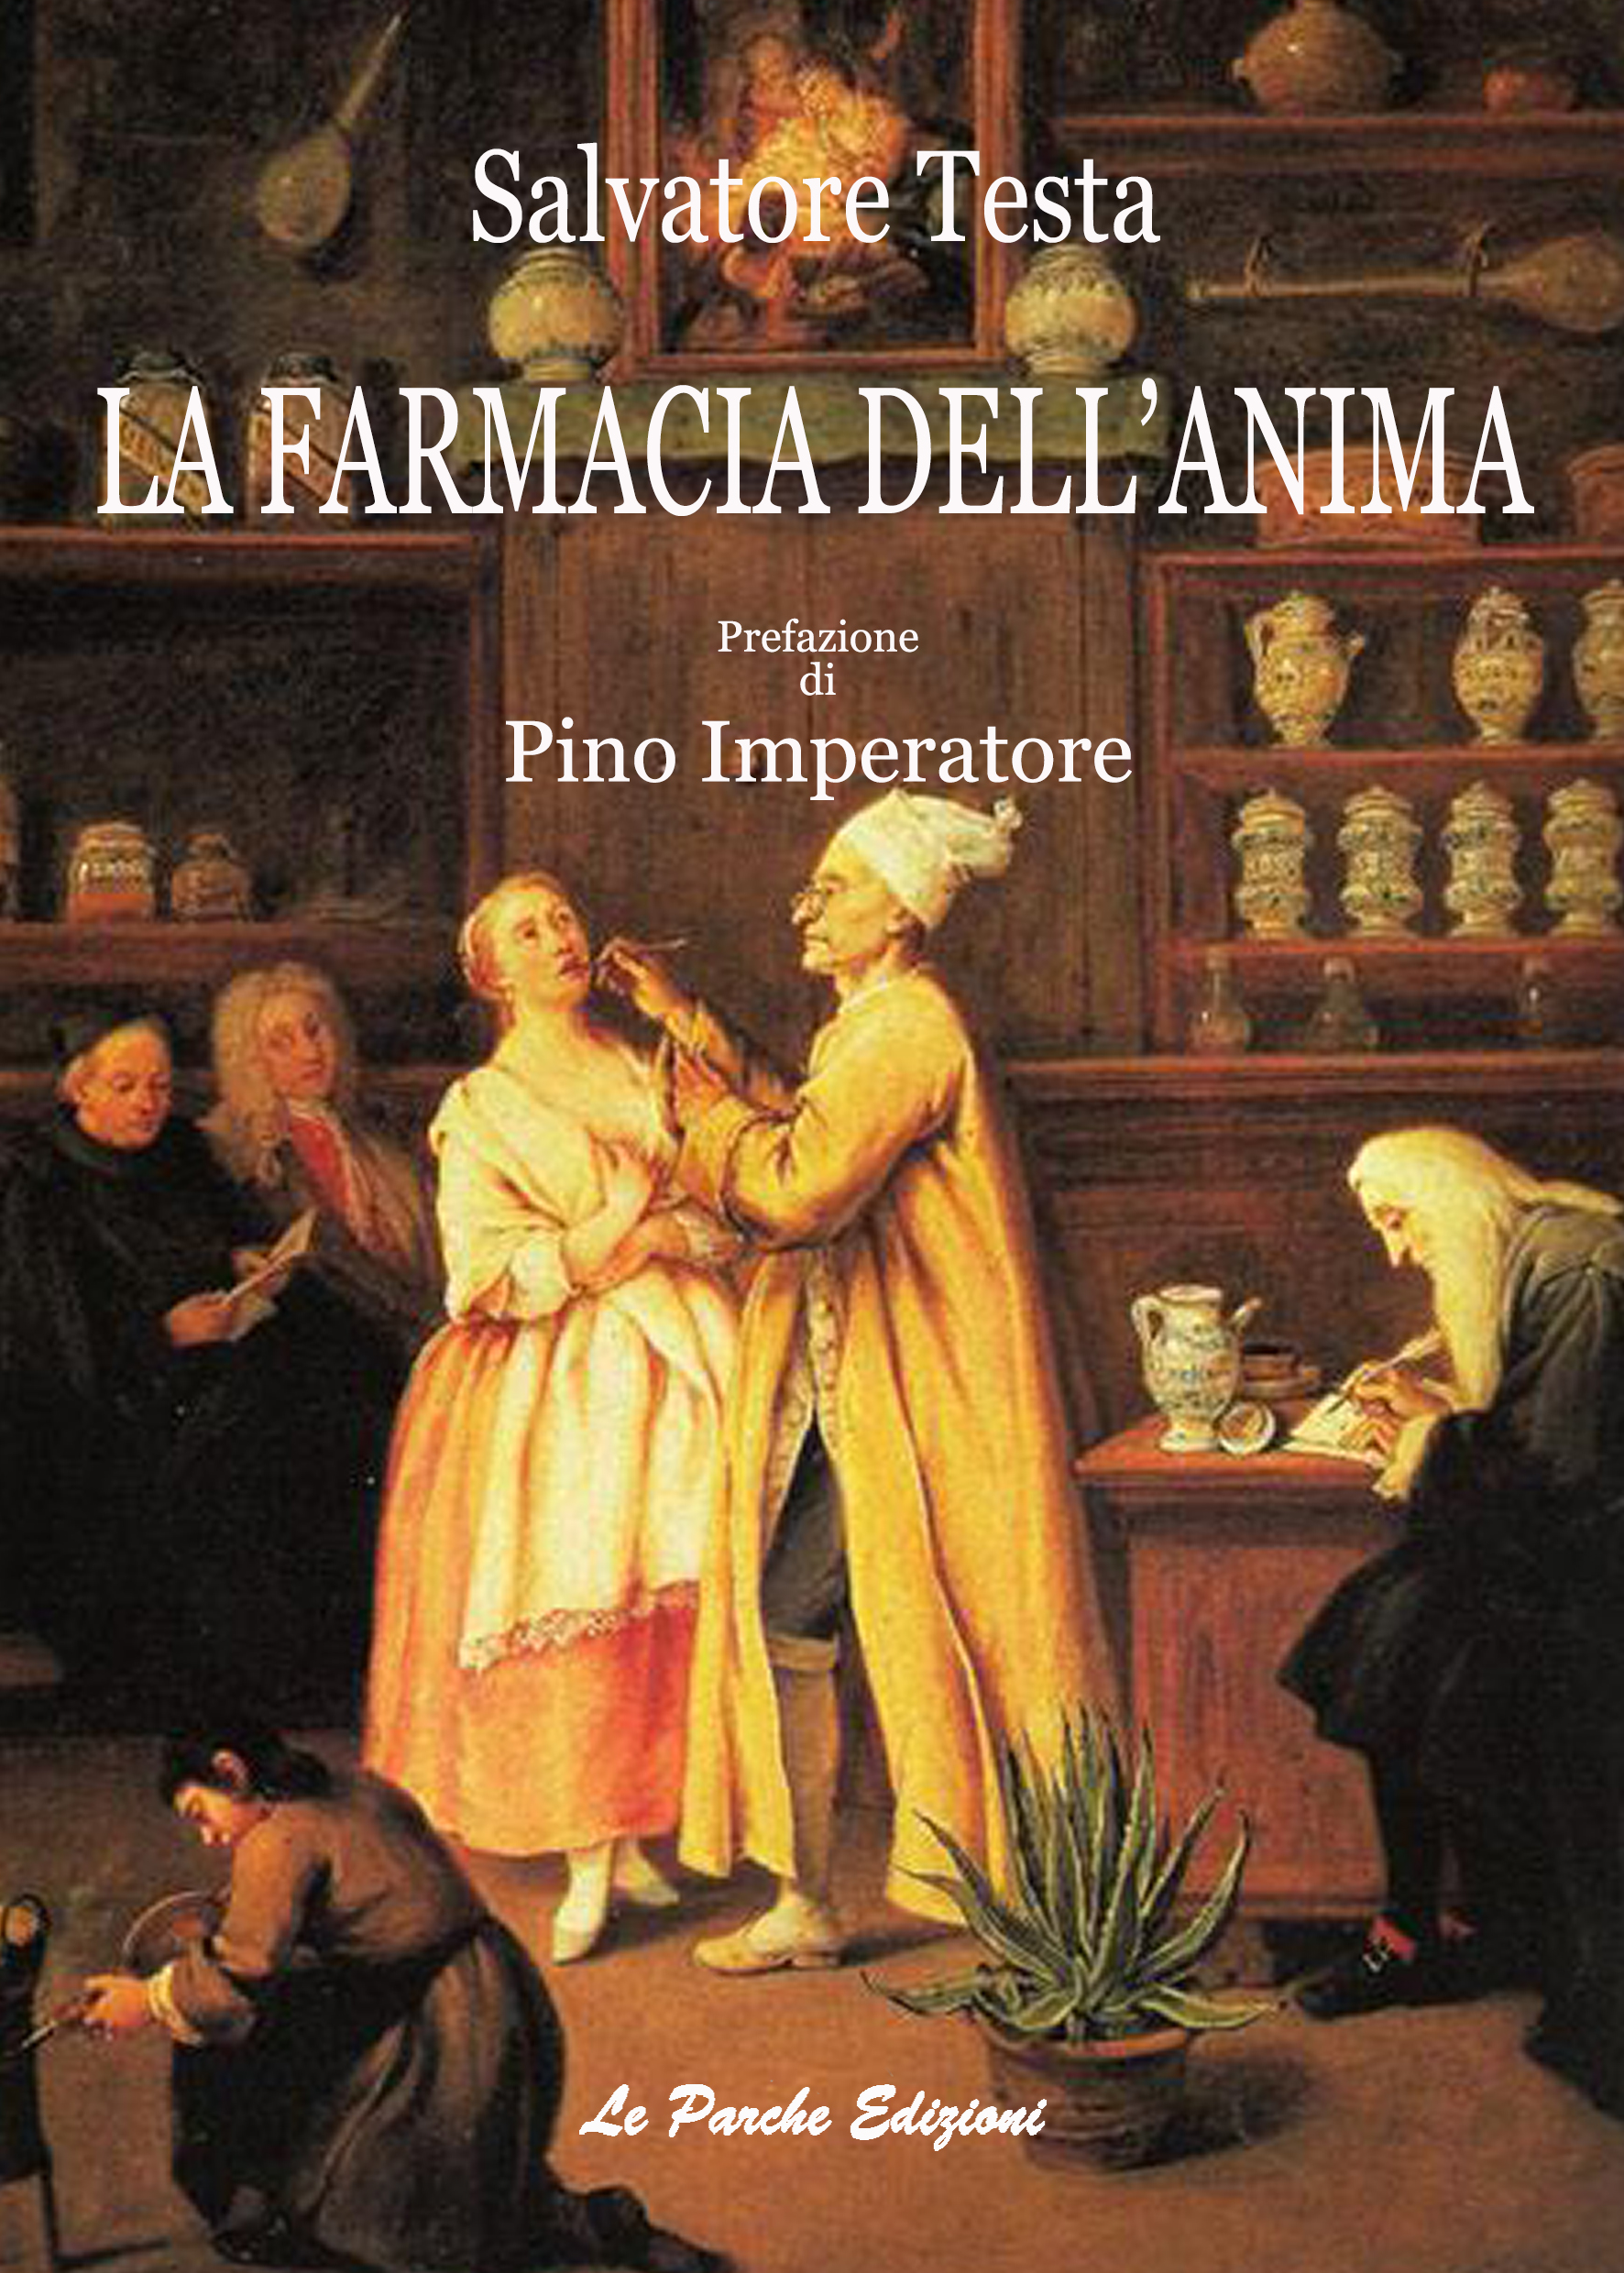 La Farmacia dell'Anima 1